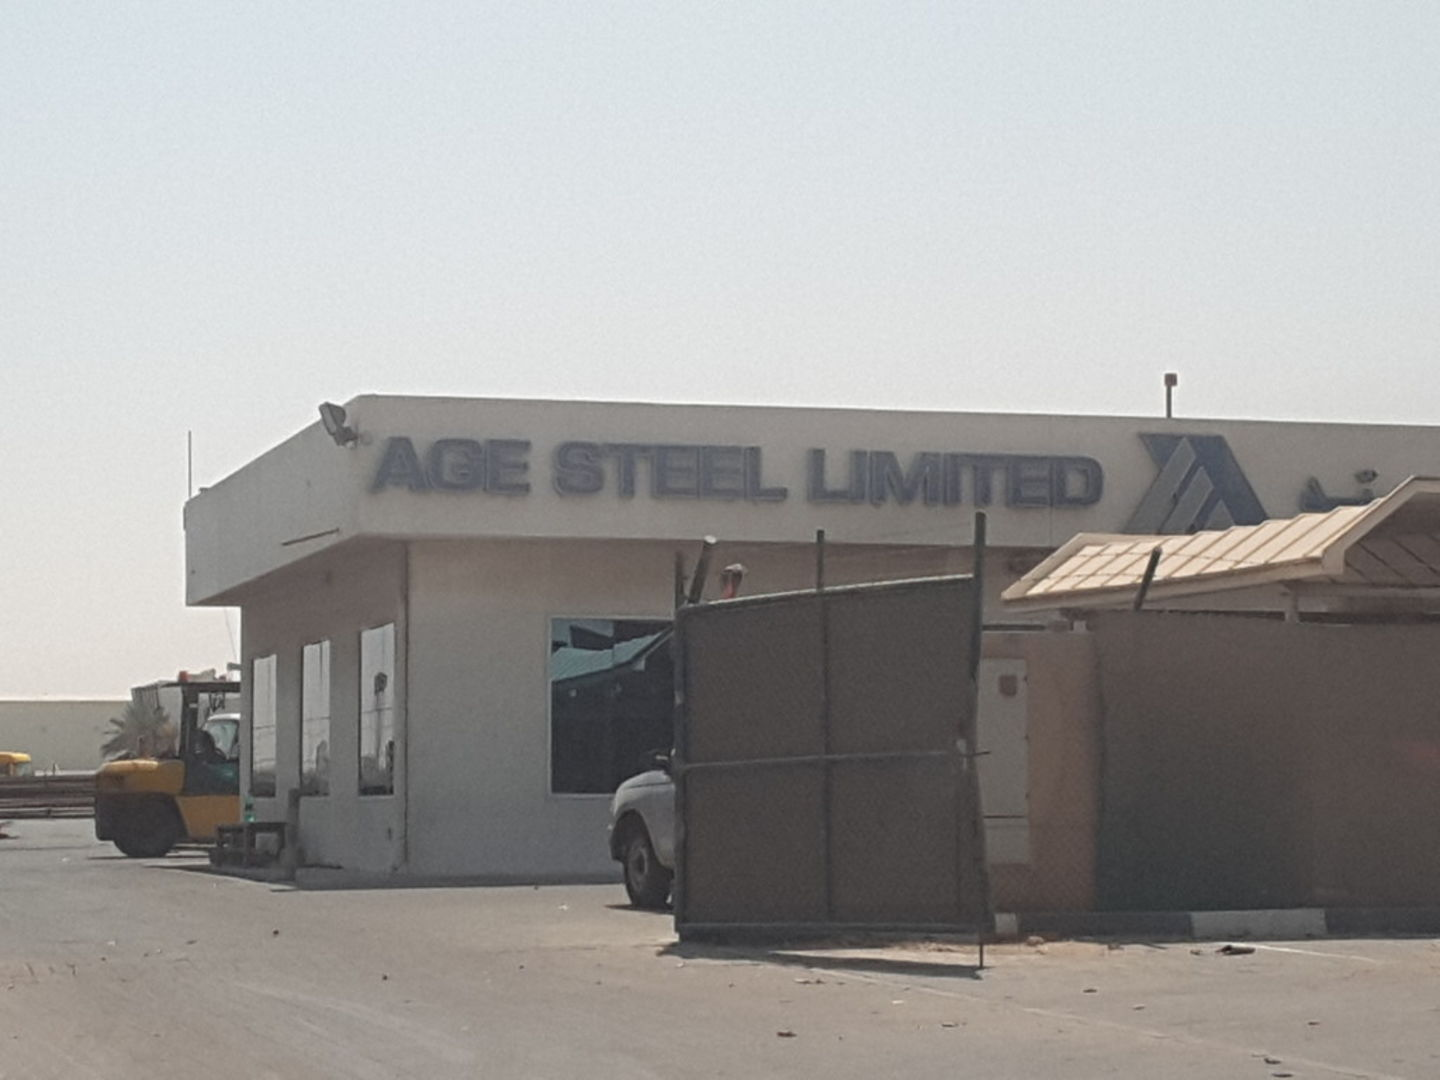 Age Steel Limited, (Construction & Building Material Trading) in